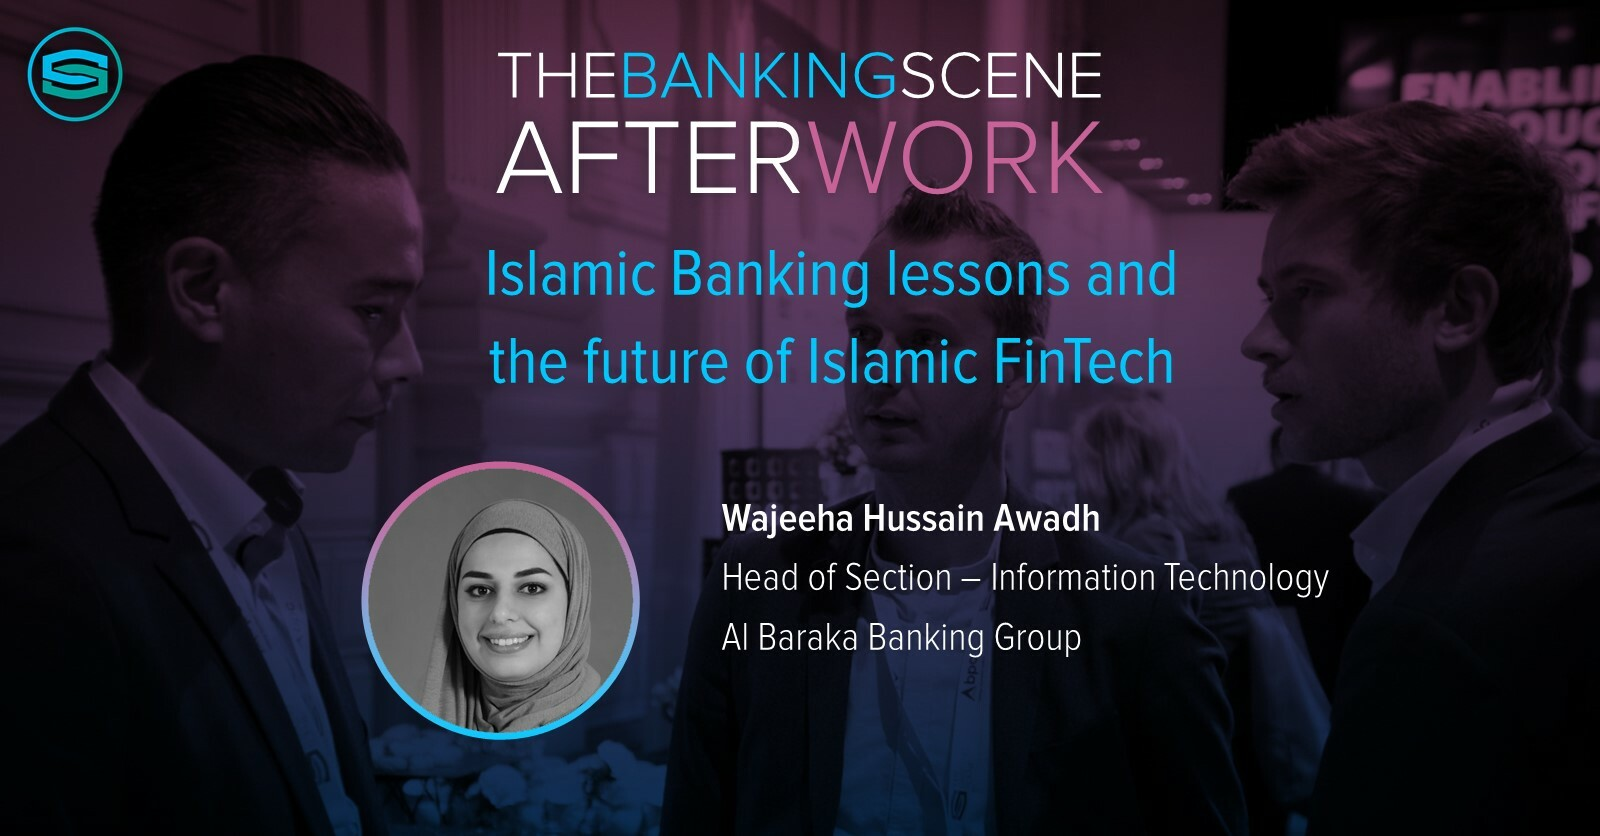 TBS After Work Islamic Banking Lessons